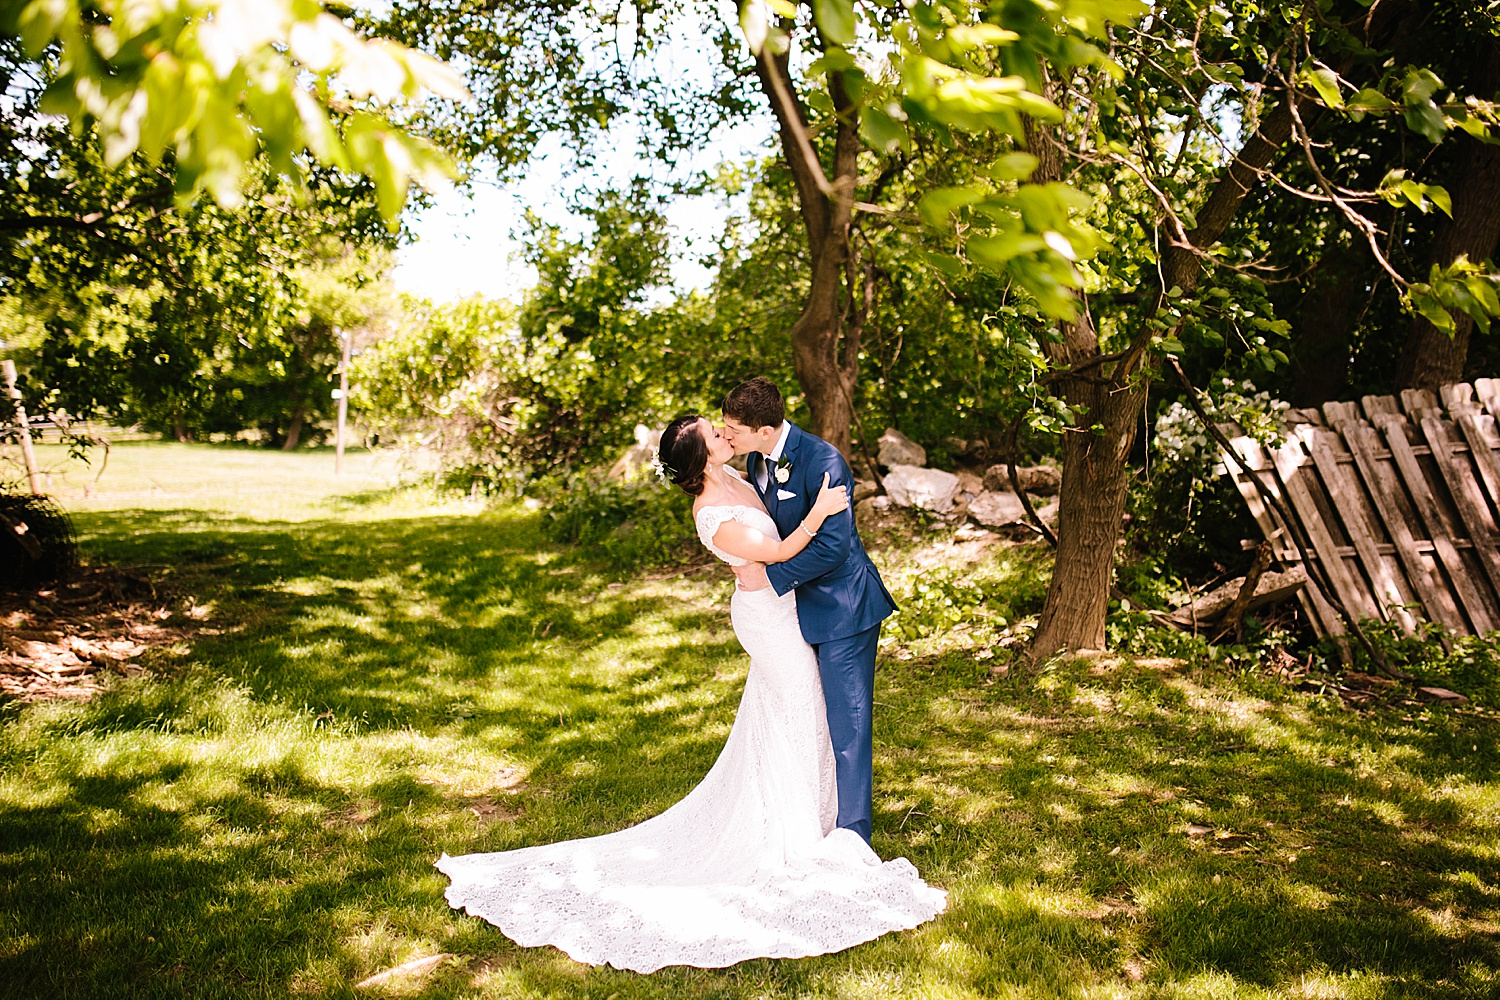 emilyaustin_rosebank_winery_newhope_farm_wedding_image041.jpg